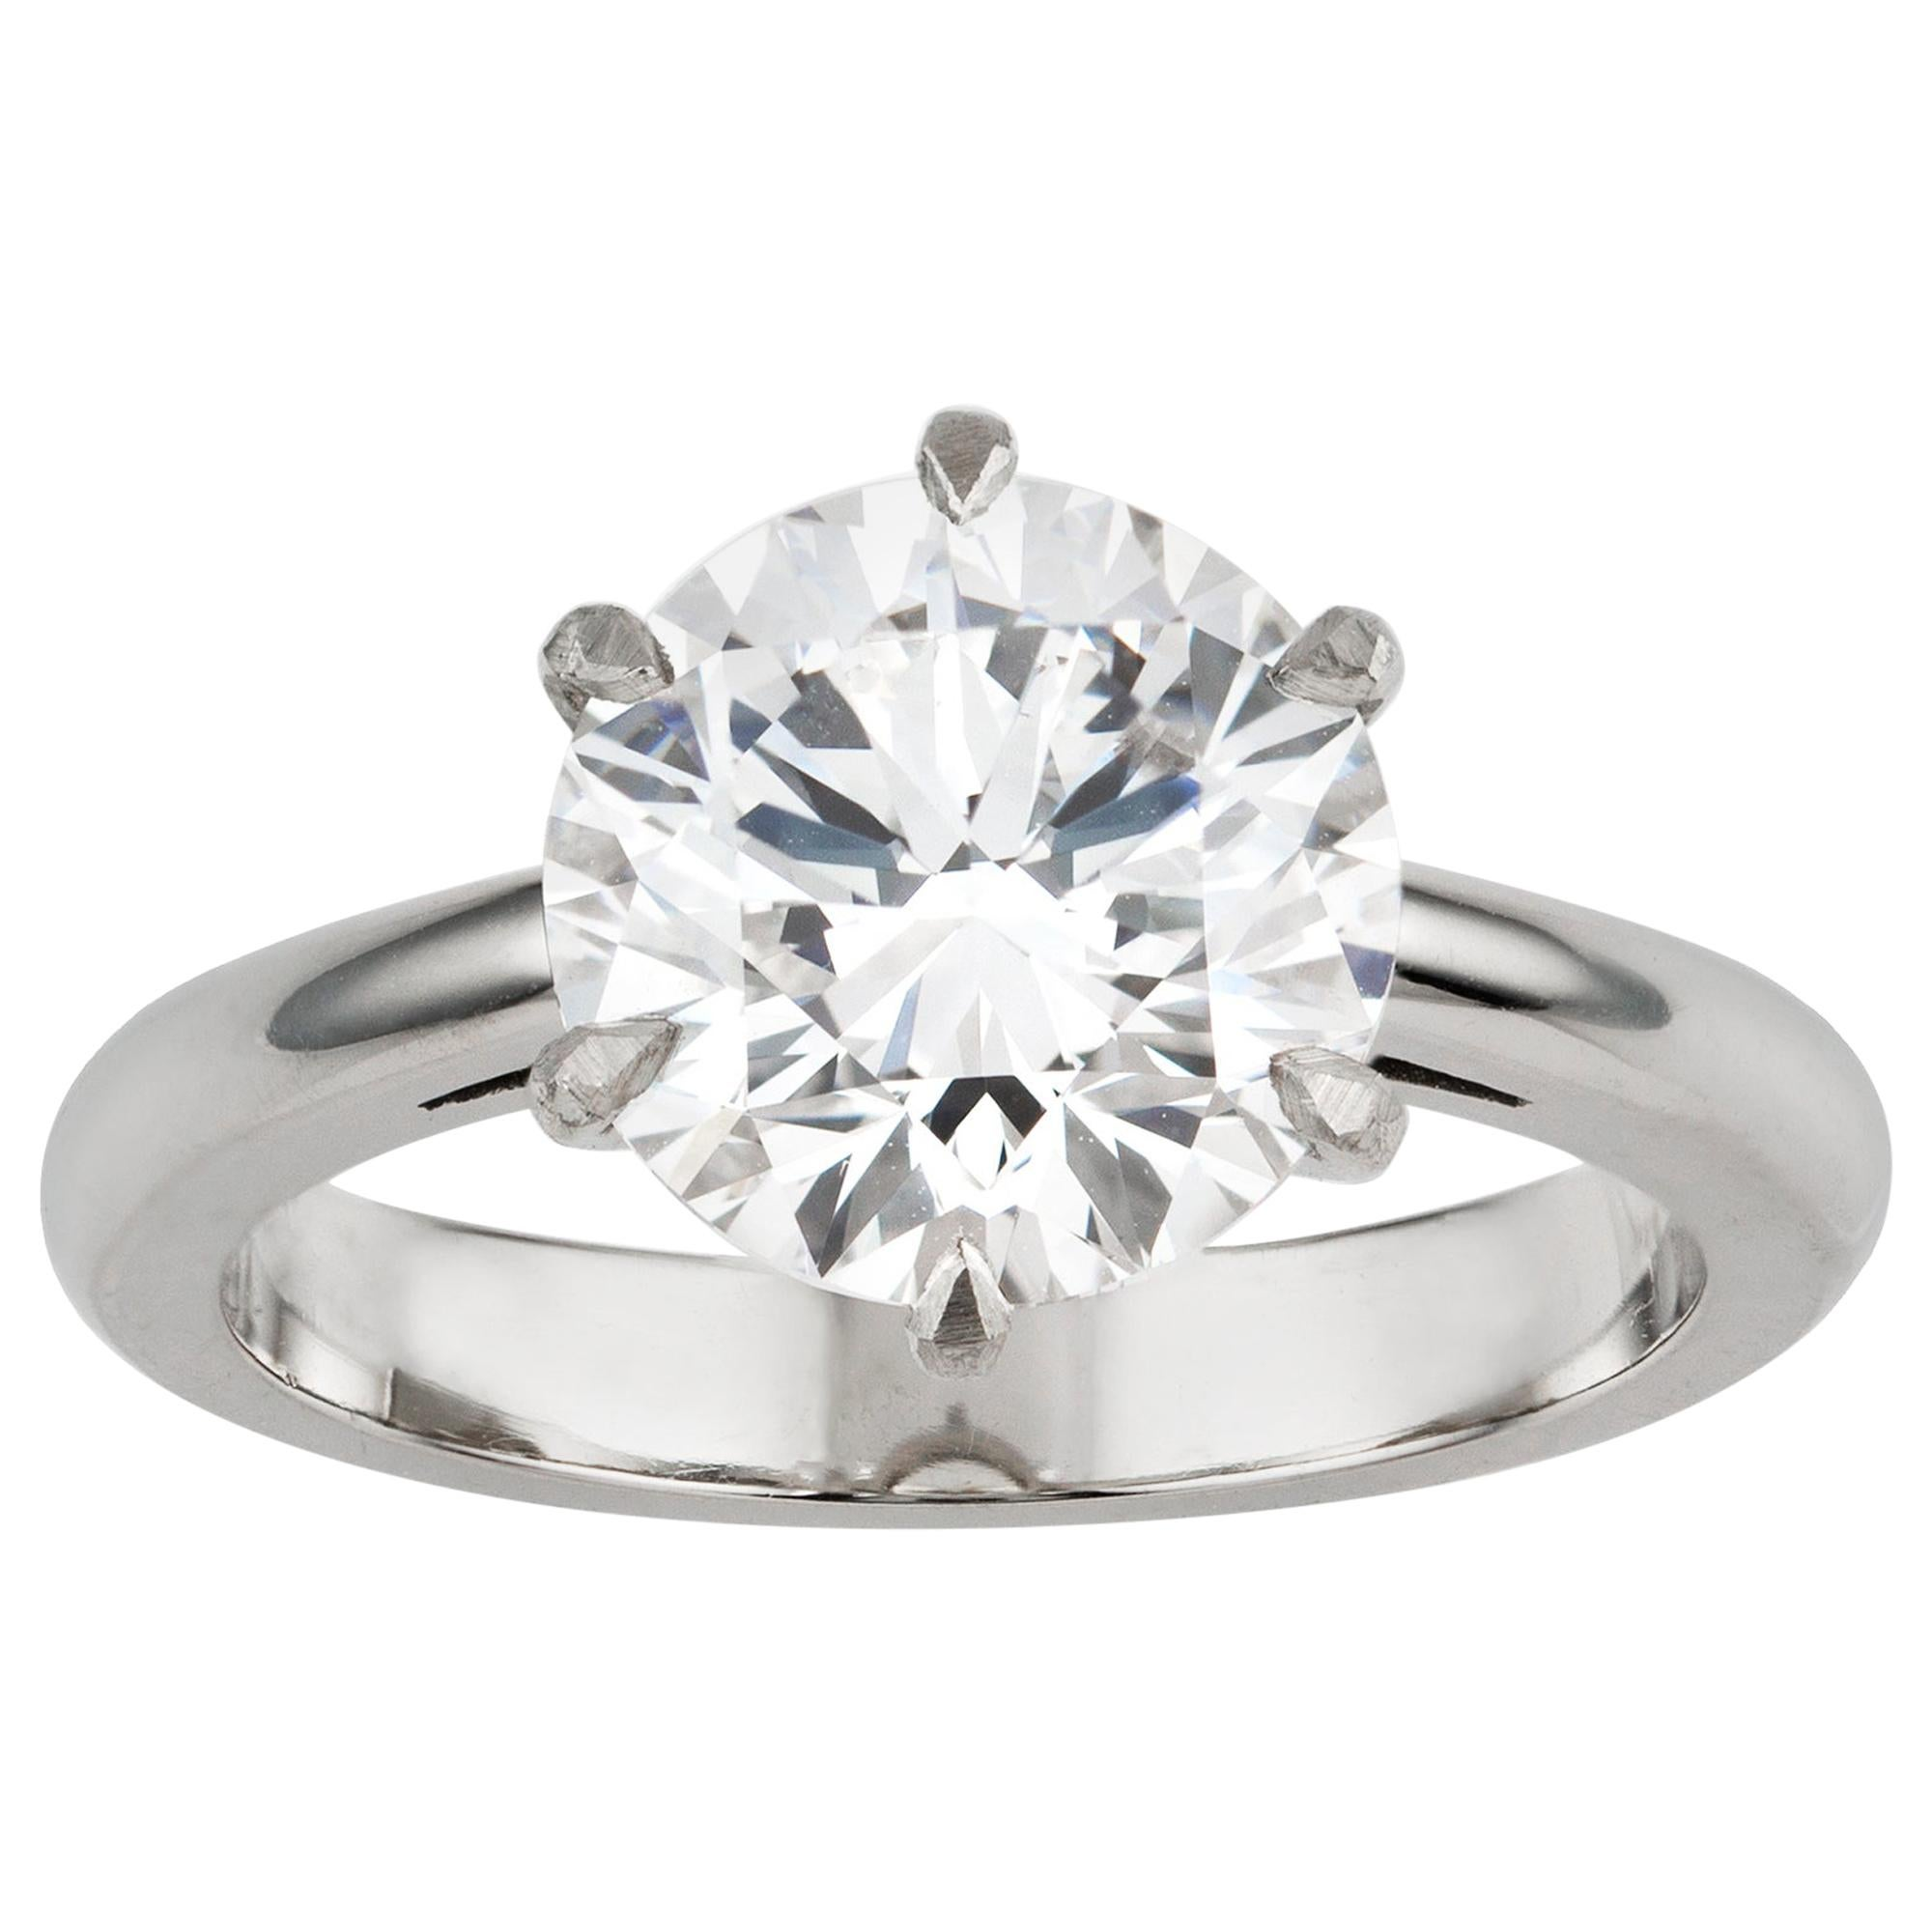 GIA Certified 3.52 Carat Internally Flawless Diamond Solitaire Ring